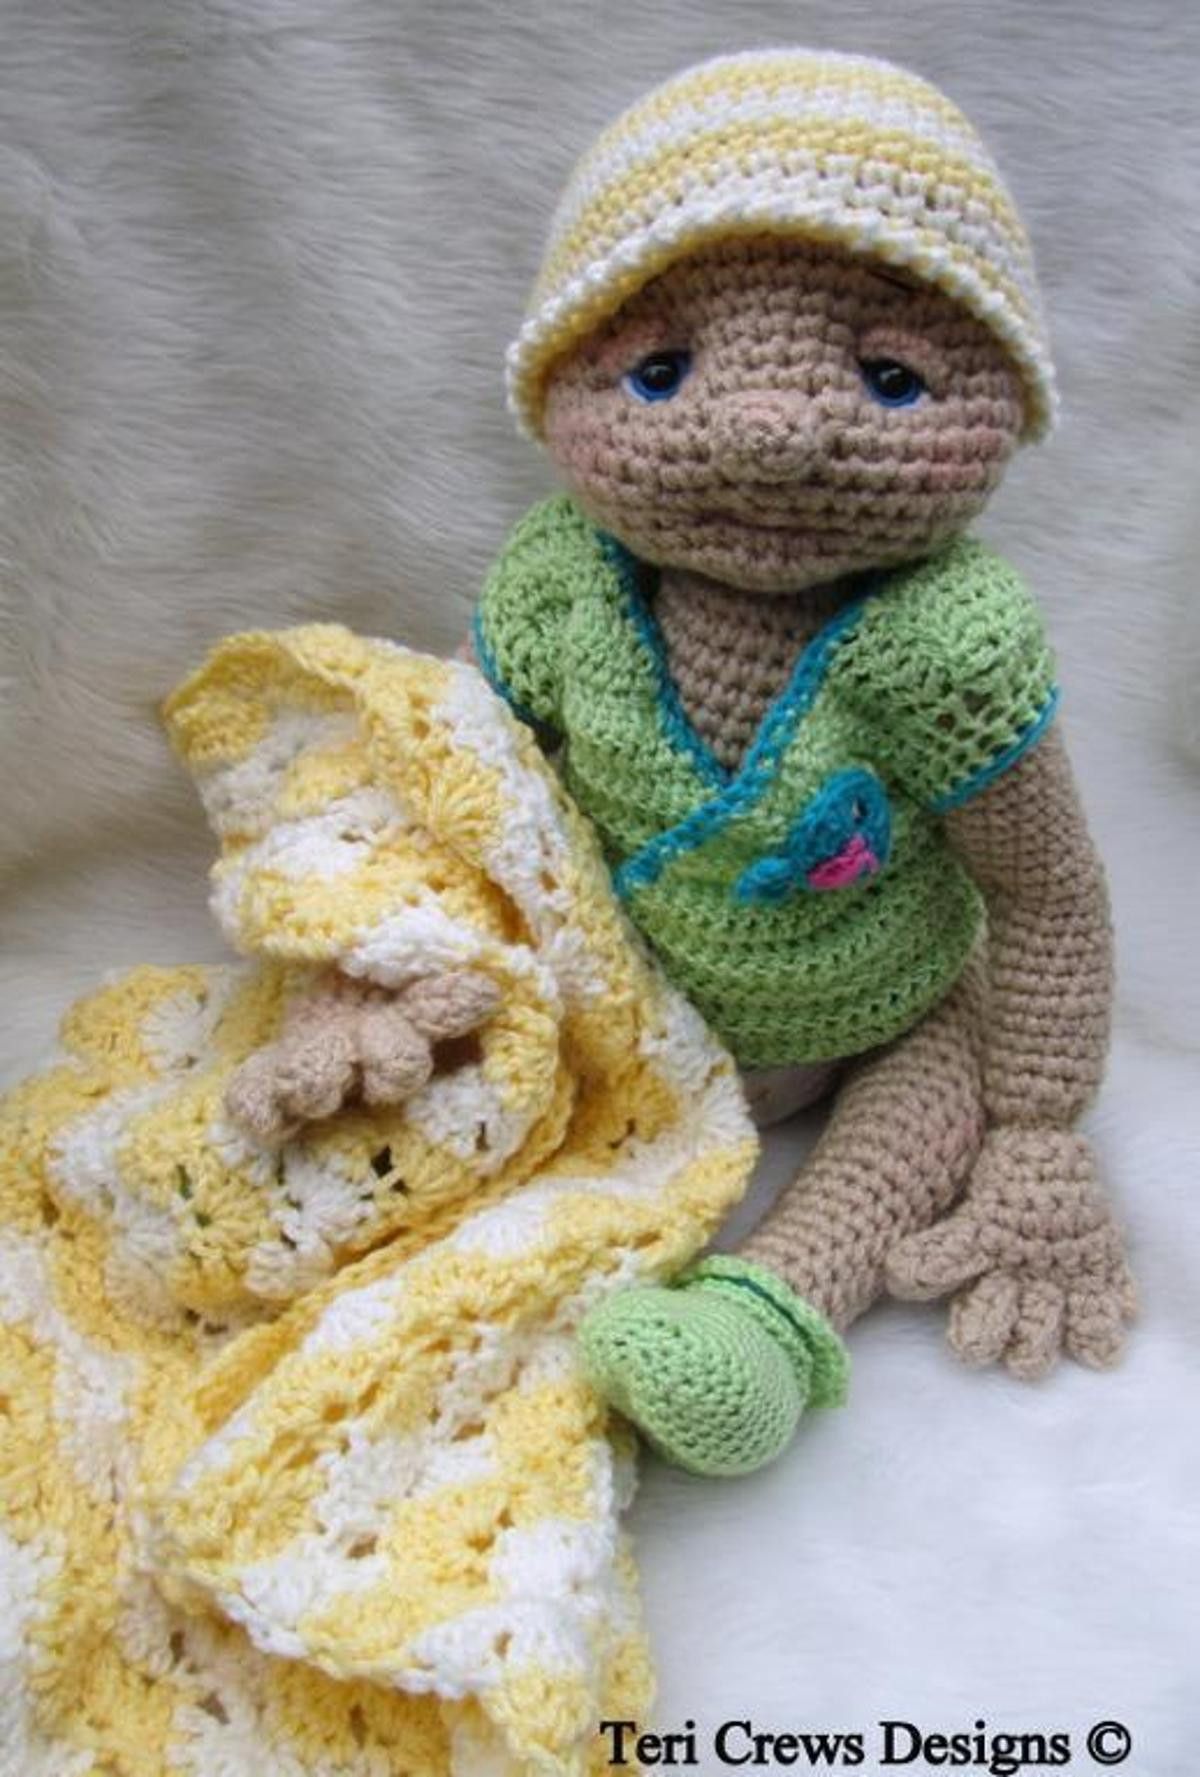 Crochet Baby Doll Pattern Unique Huggable Baby Doll Crochet Pattern Of Amazing 40 Pics Crochet Baby Doll Pattern